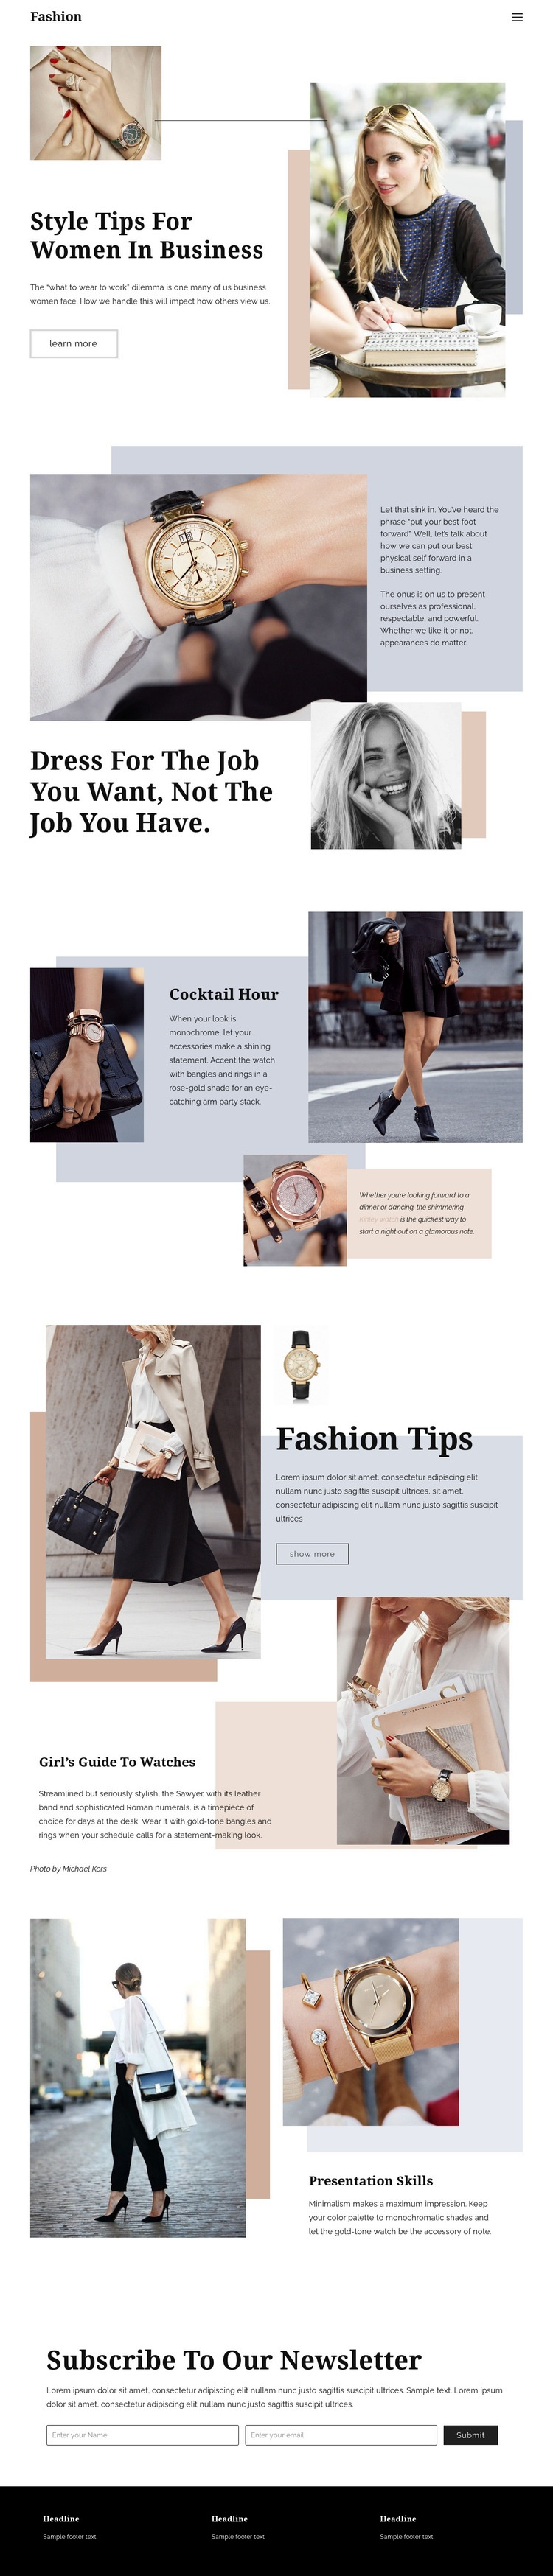 Fashion tips Html Code Example